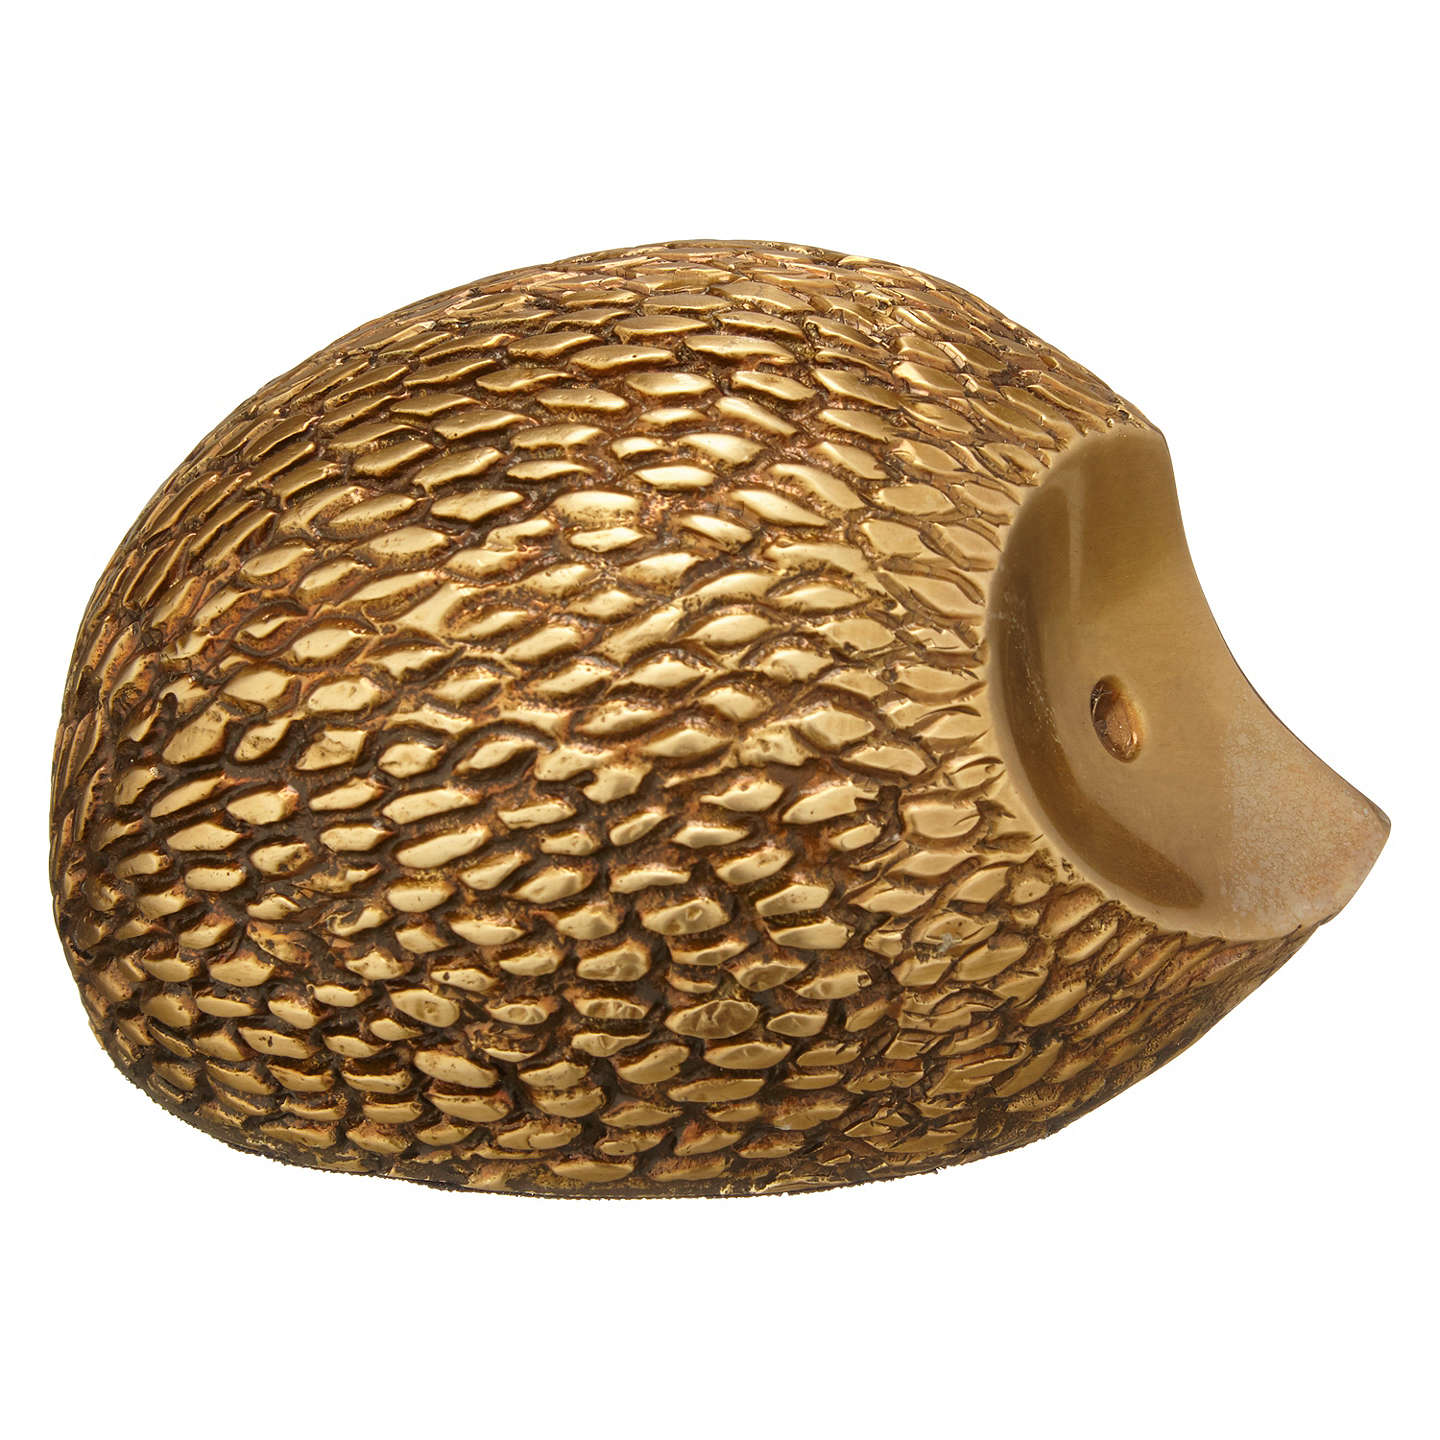 BuyJohn Lewis Deco Hedgehog Ornament, Brass Online at johnlewis.com